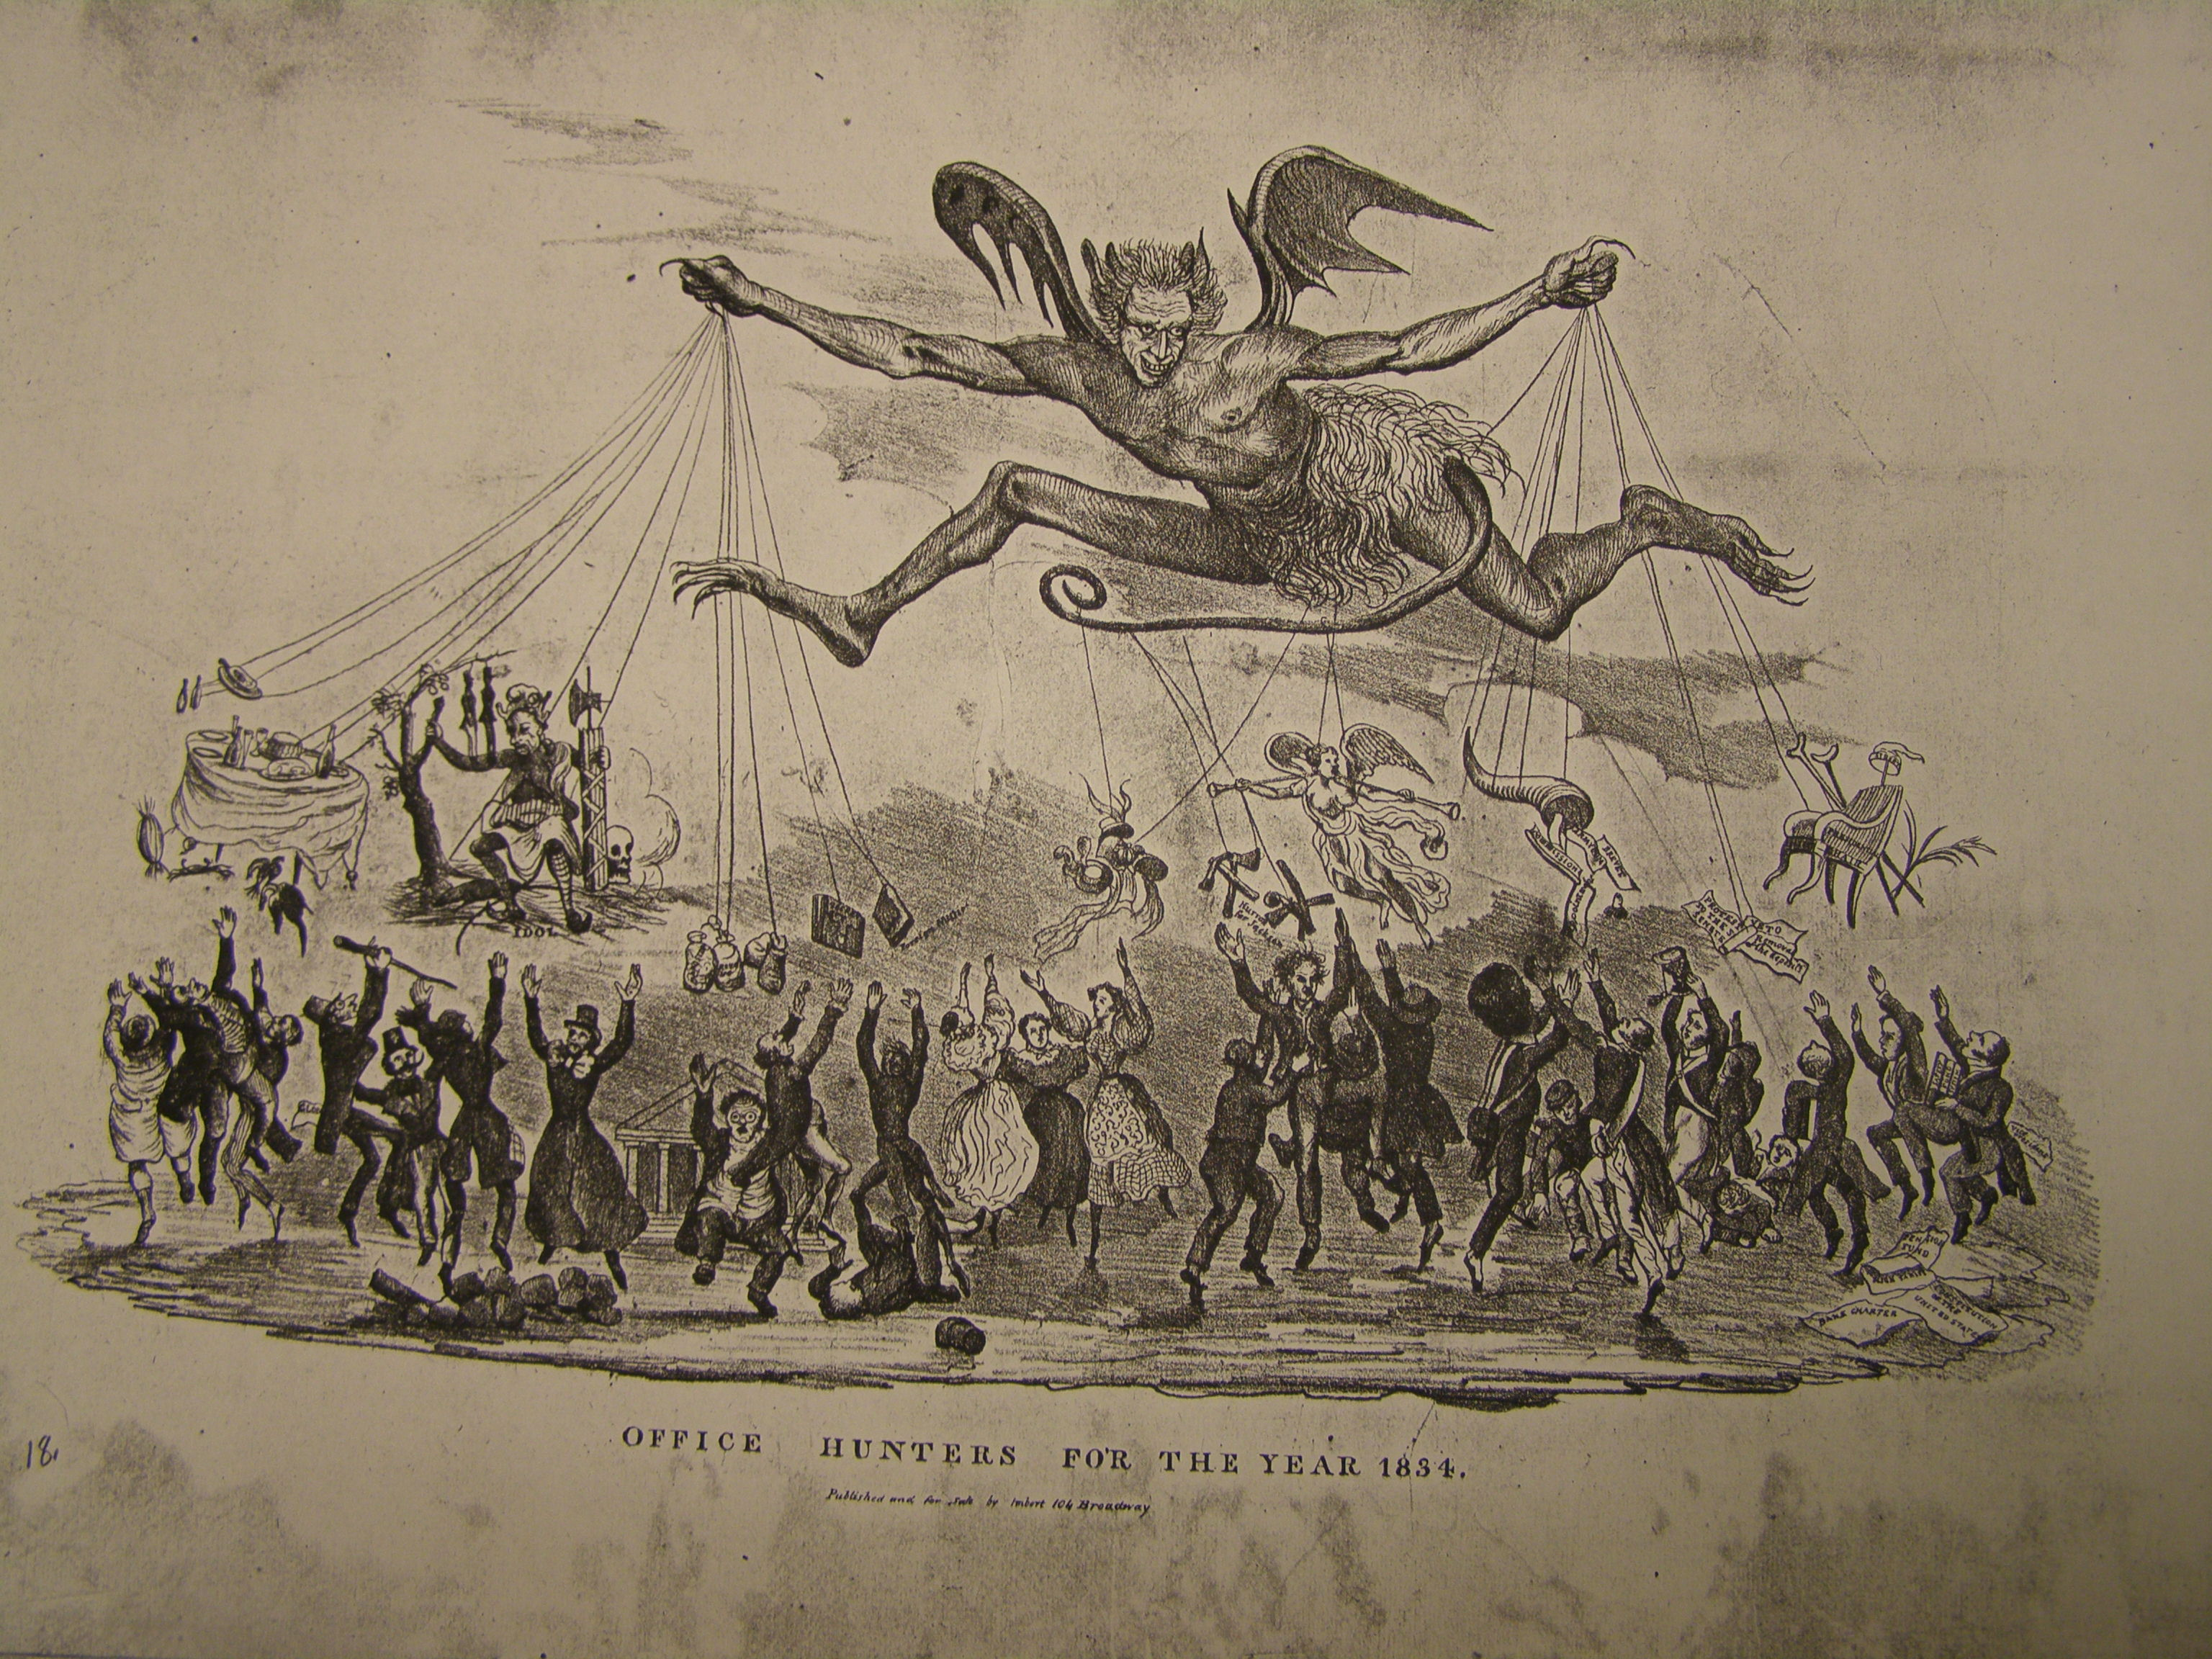 ajackson debate link cartoon office hunters for 1834